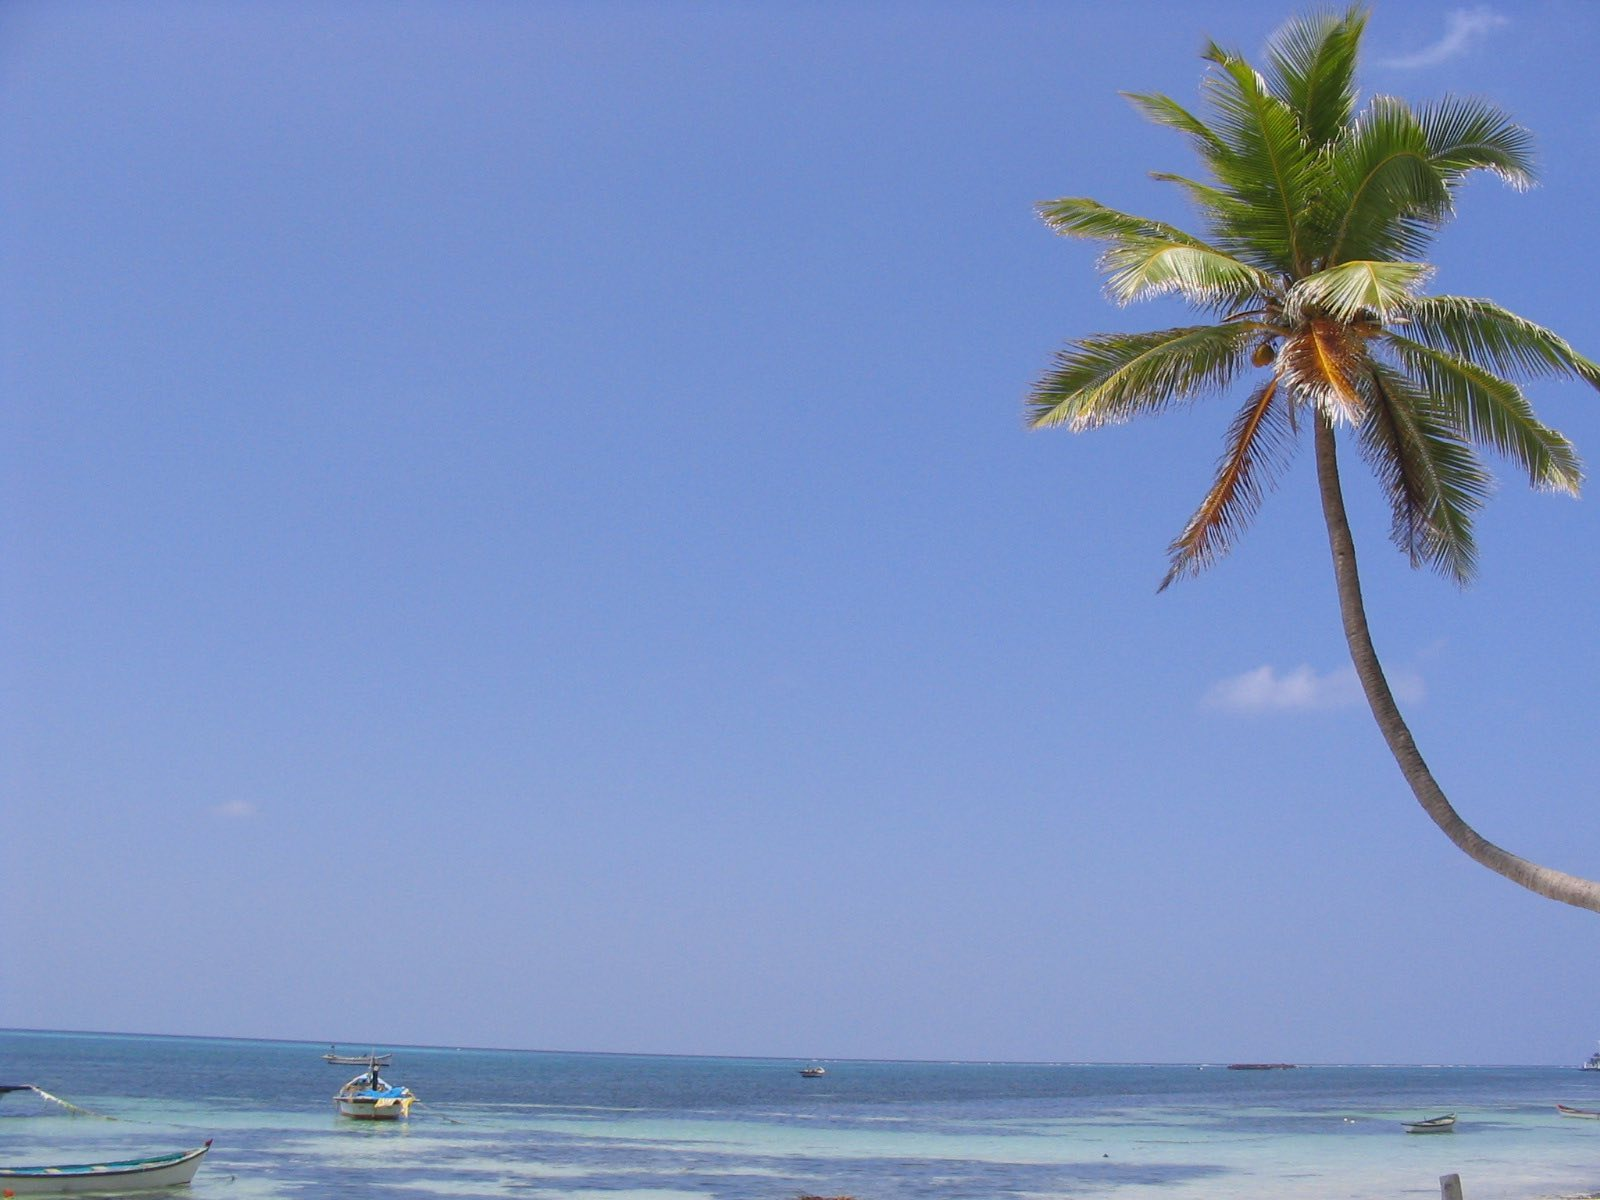 Kavaratti beach_Things to do in Lakshadweep Travel guide